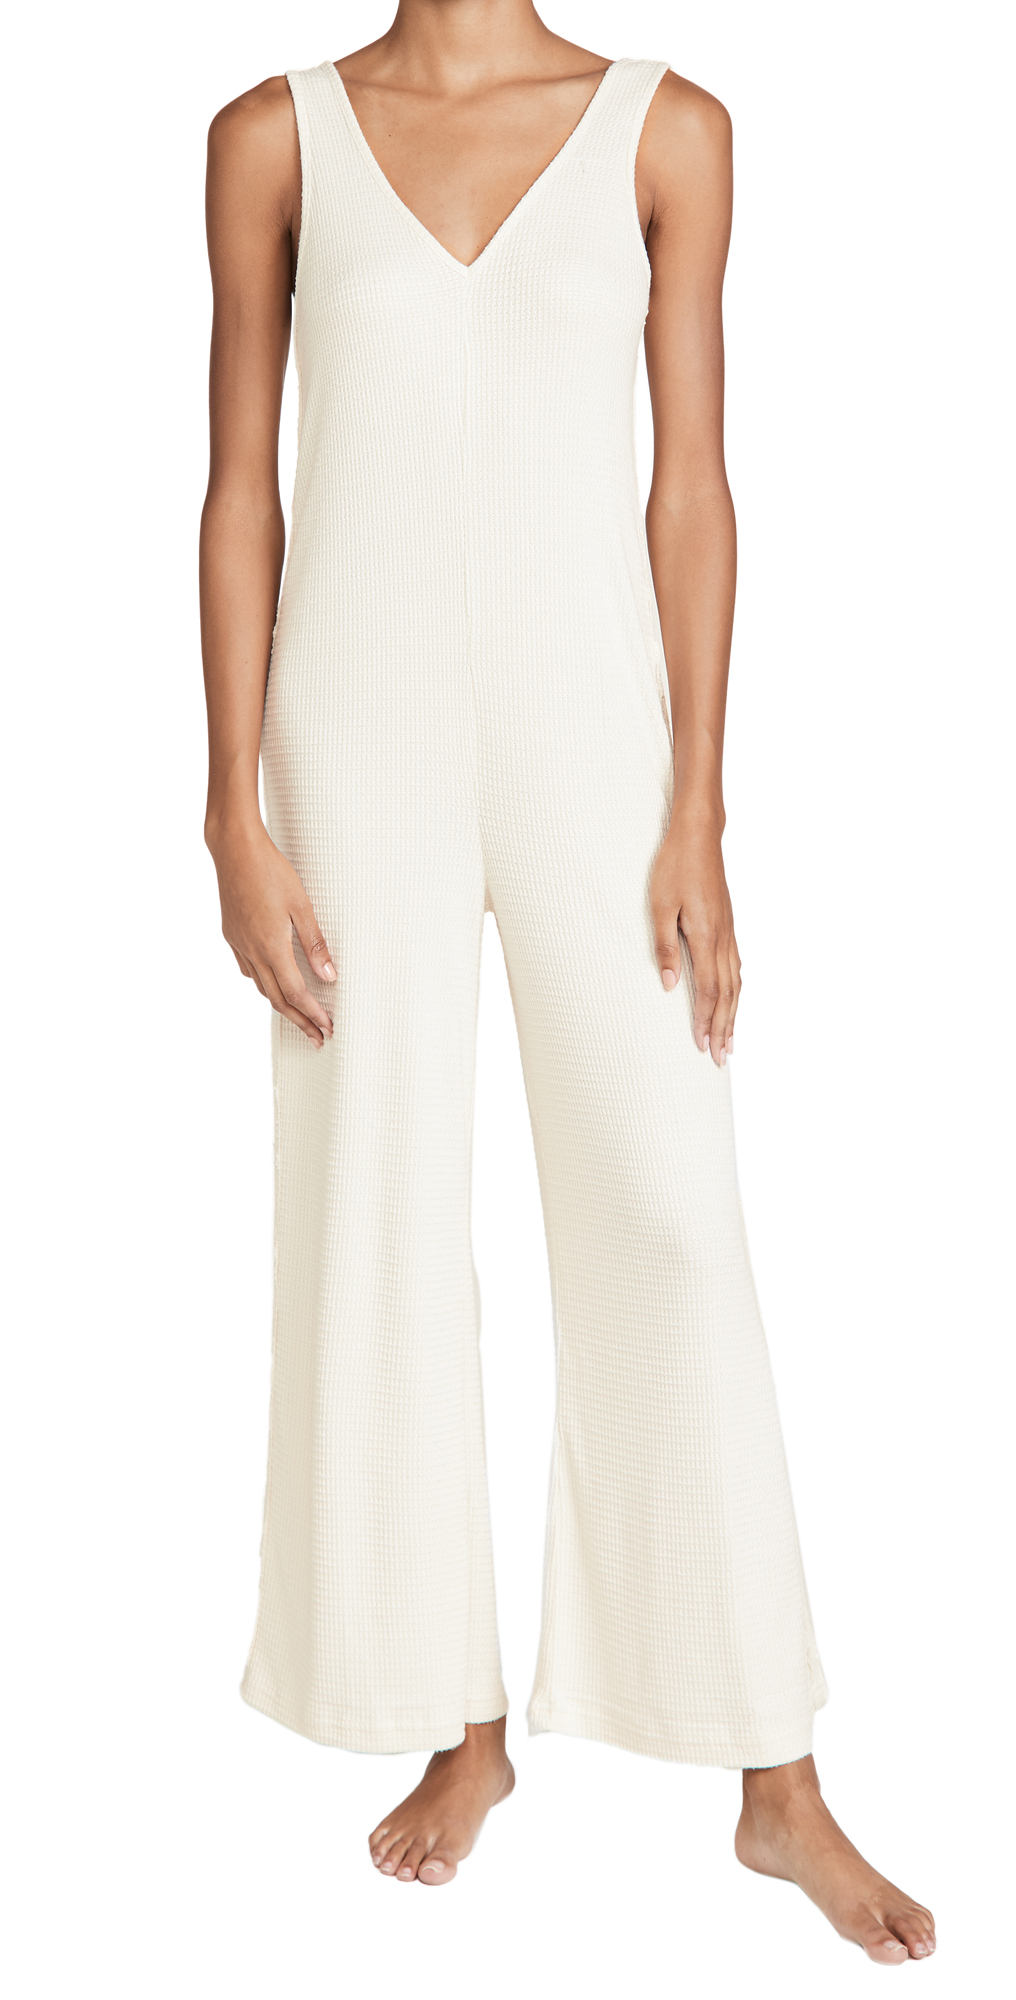 Honeydew Intimates Brushed Waffle Jumpsuit